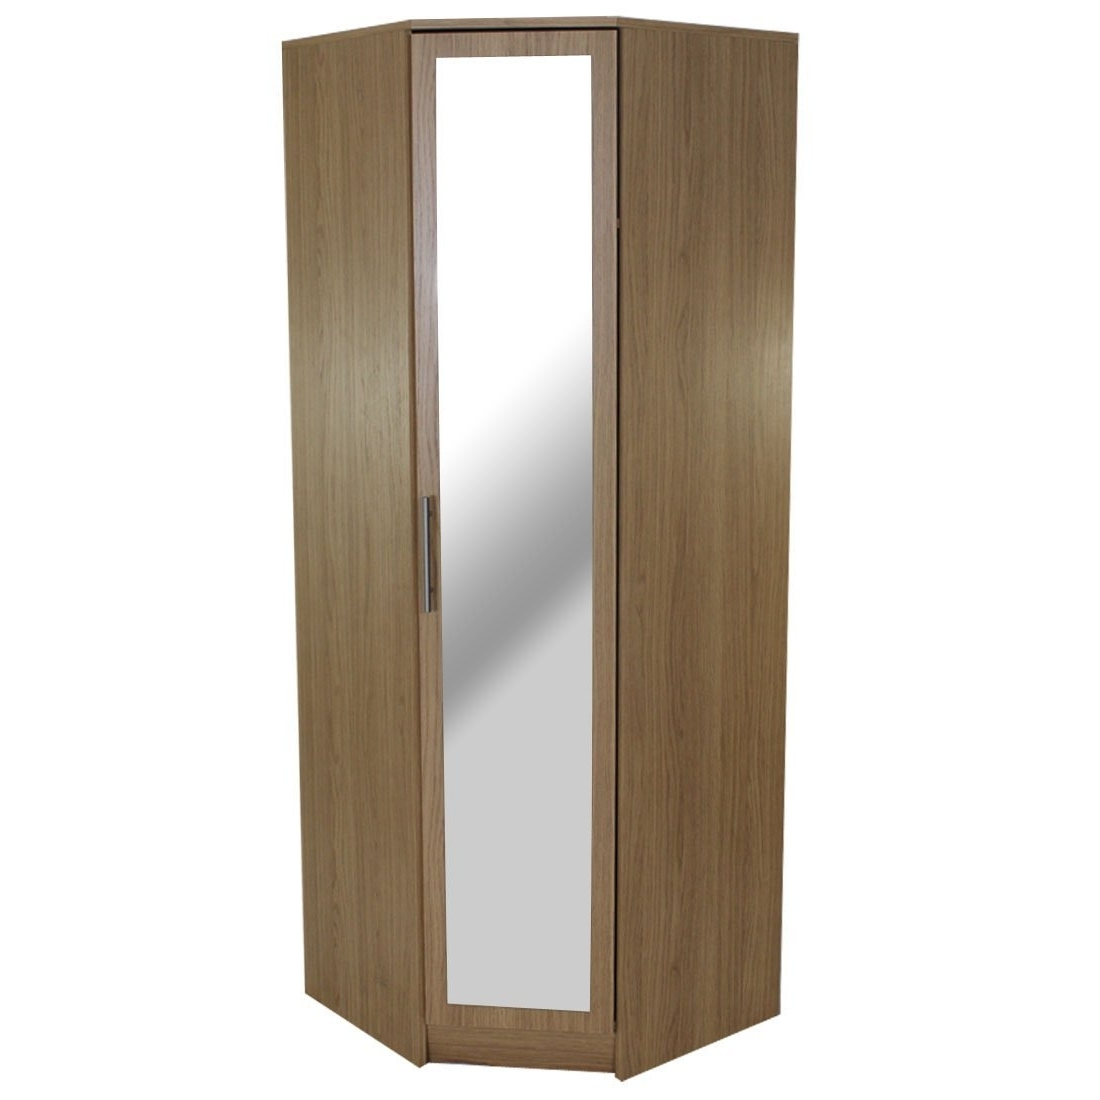 Corner Mirrored Wardrobes Intended For Trendy Devoted2Home Humber Bedroom Furniture With 1 Door Mirrored Corner (View 5 of 15)